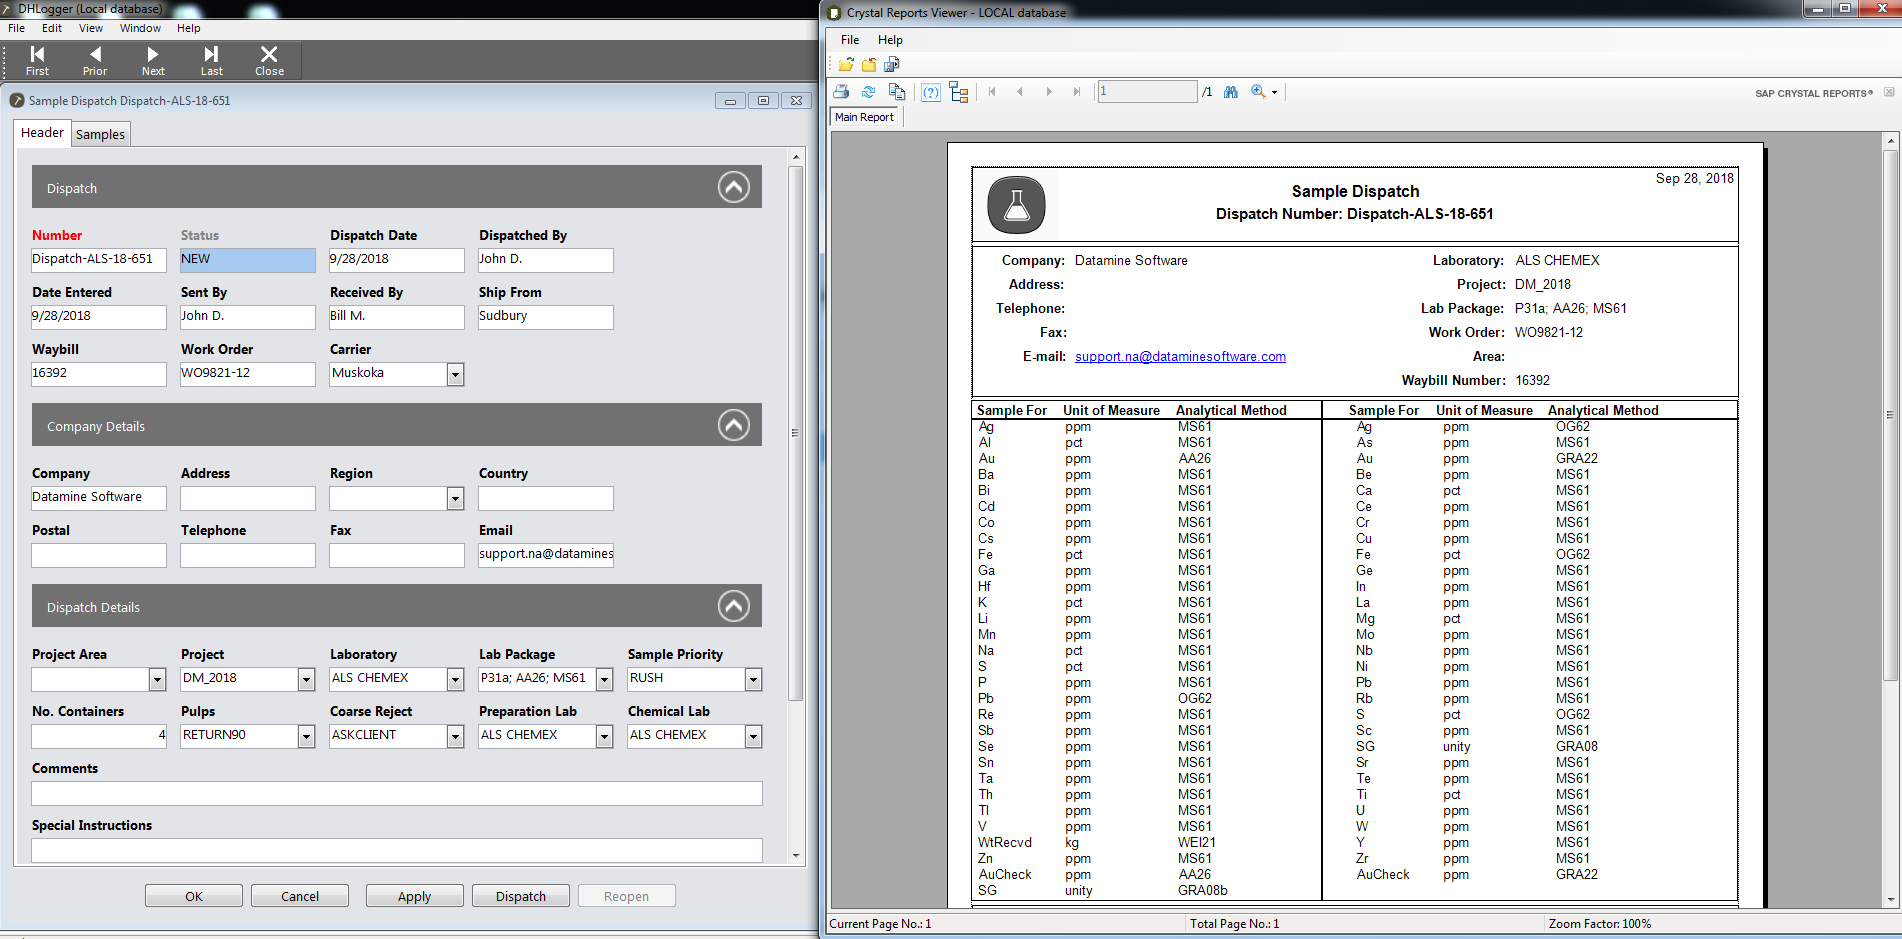 an example sample dispatch table created in DHLogger, Fusion's geological drillhole management product.